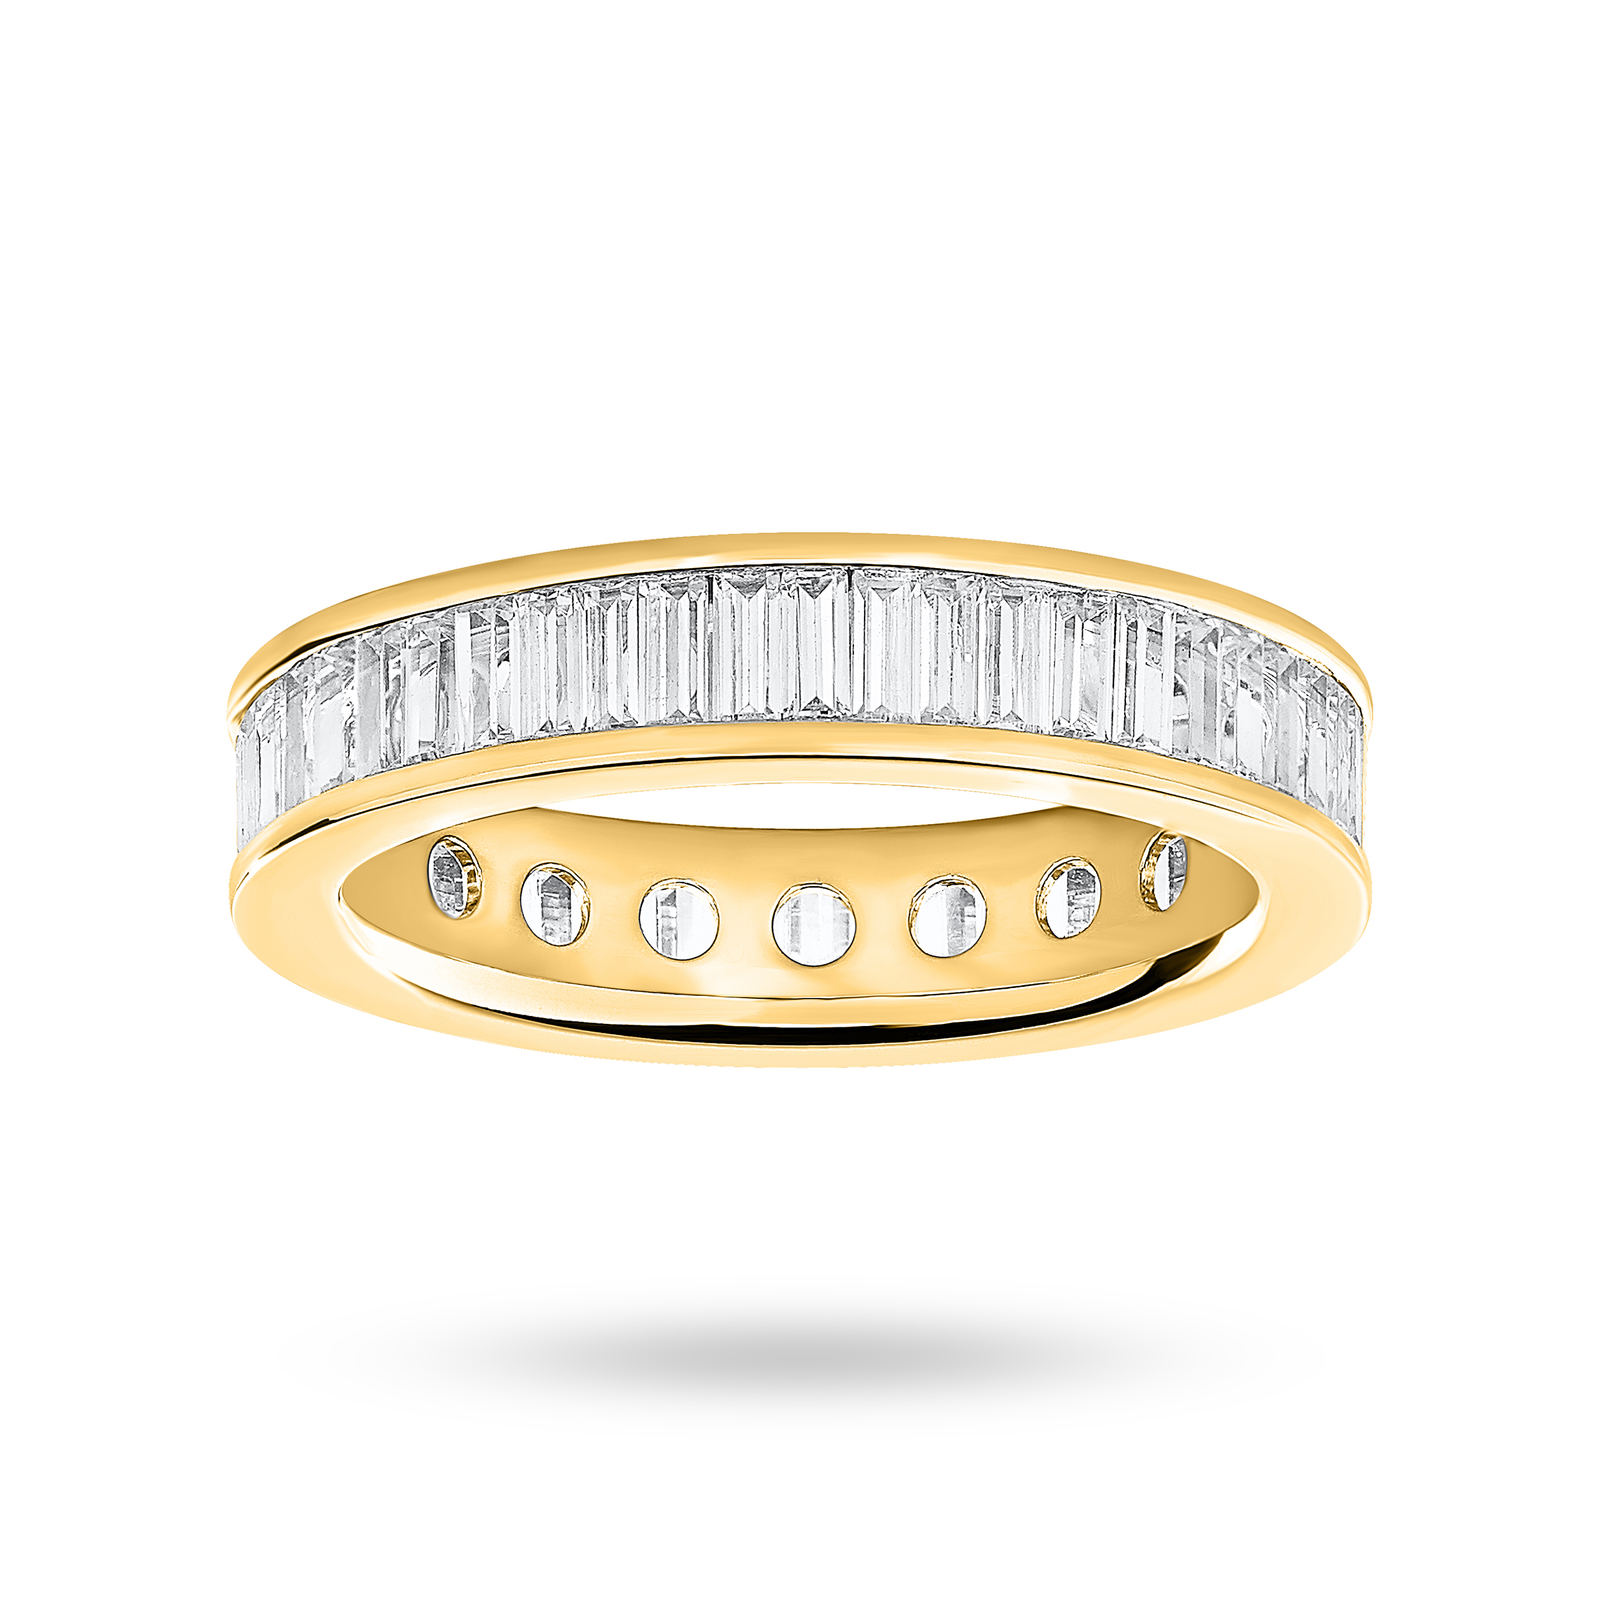 18 Carat Yellow Gold 2.00 Carat Baguette Cut Full Eternity Ring